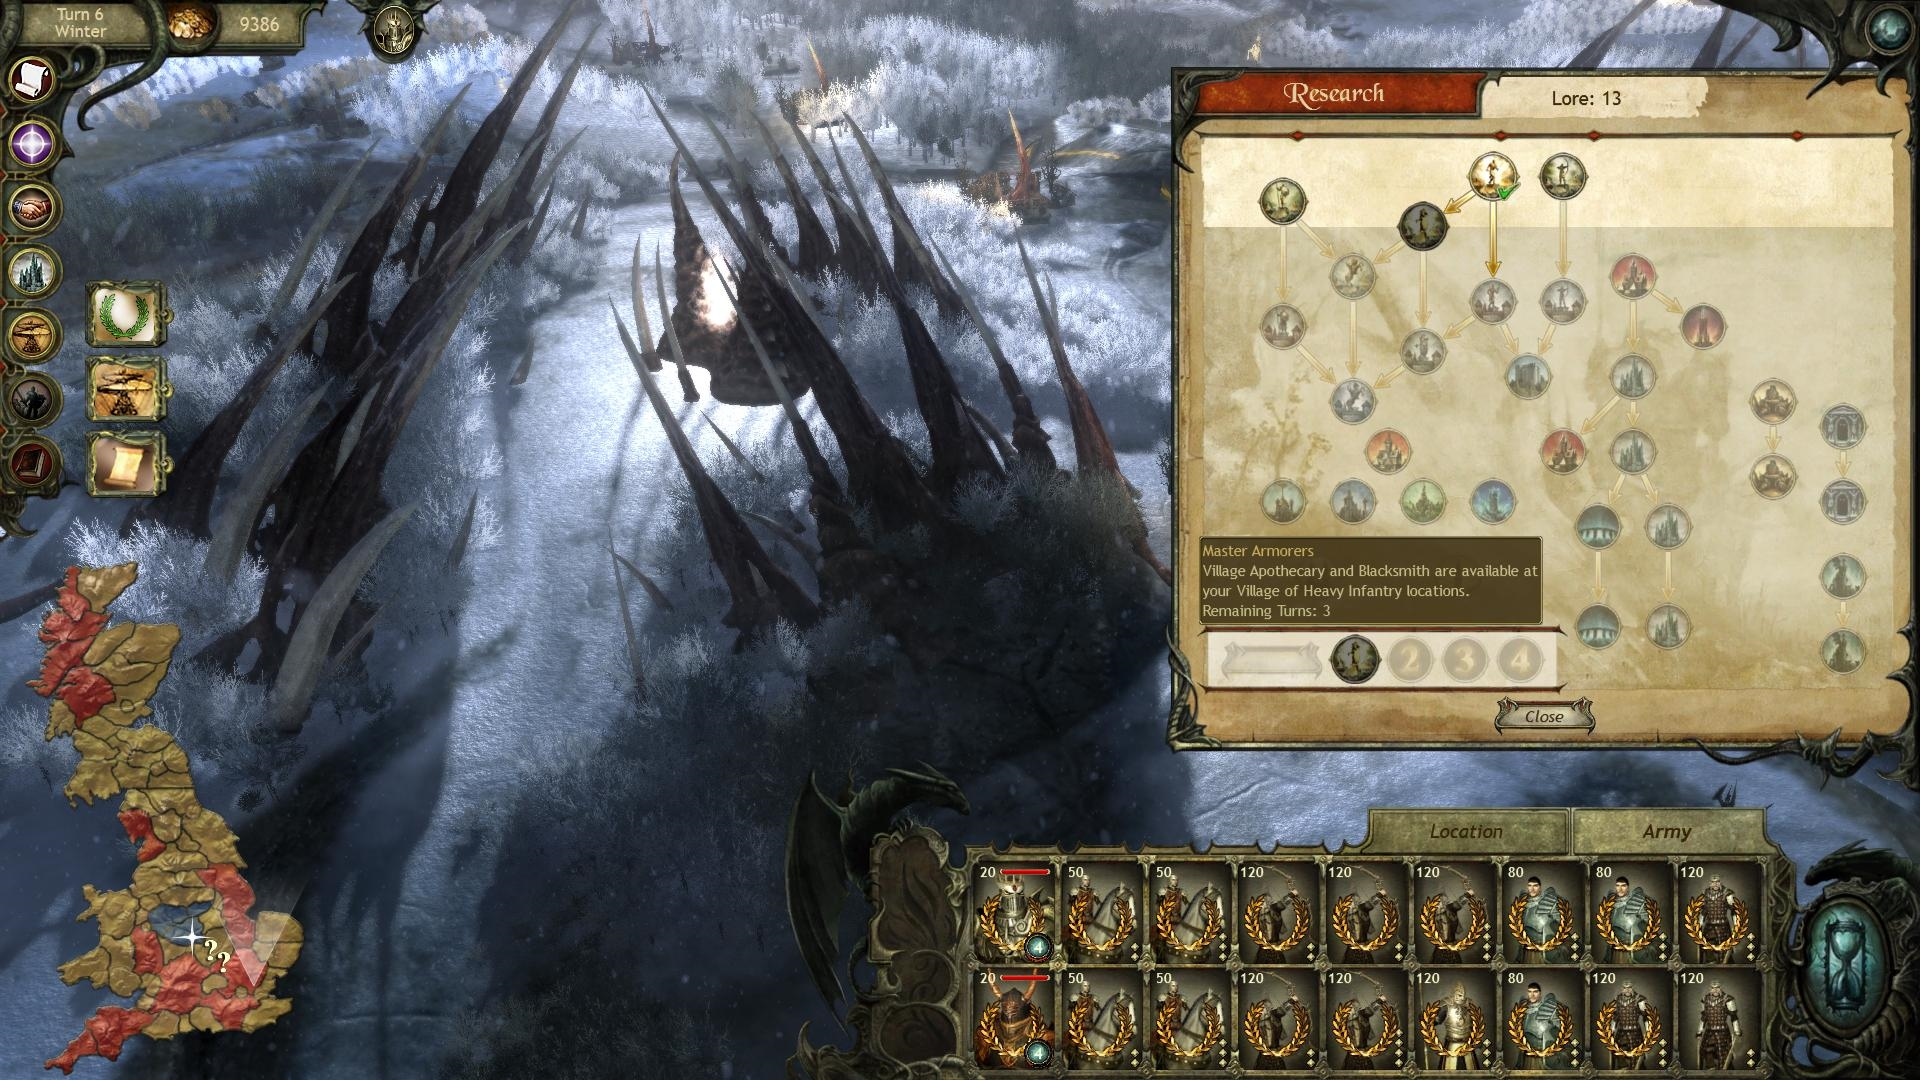 King Arthur II: The Role Playing Wargame | ROW (c18b5d9f-09c1-48f7-a73f-251805d2e320)